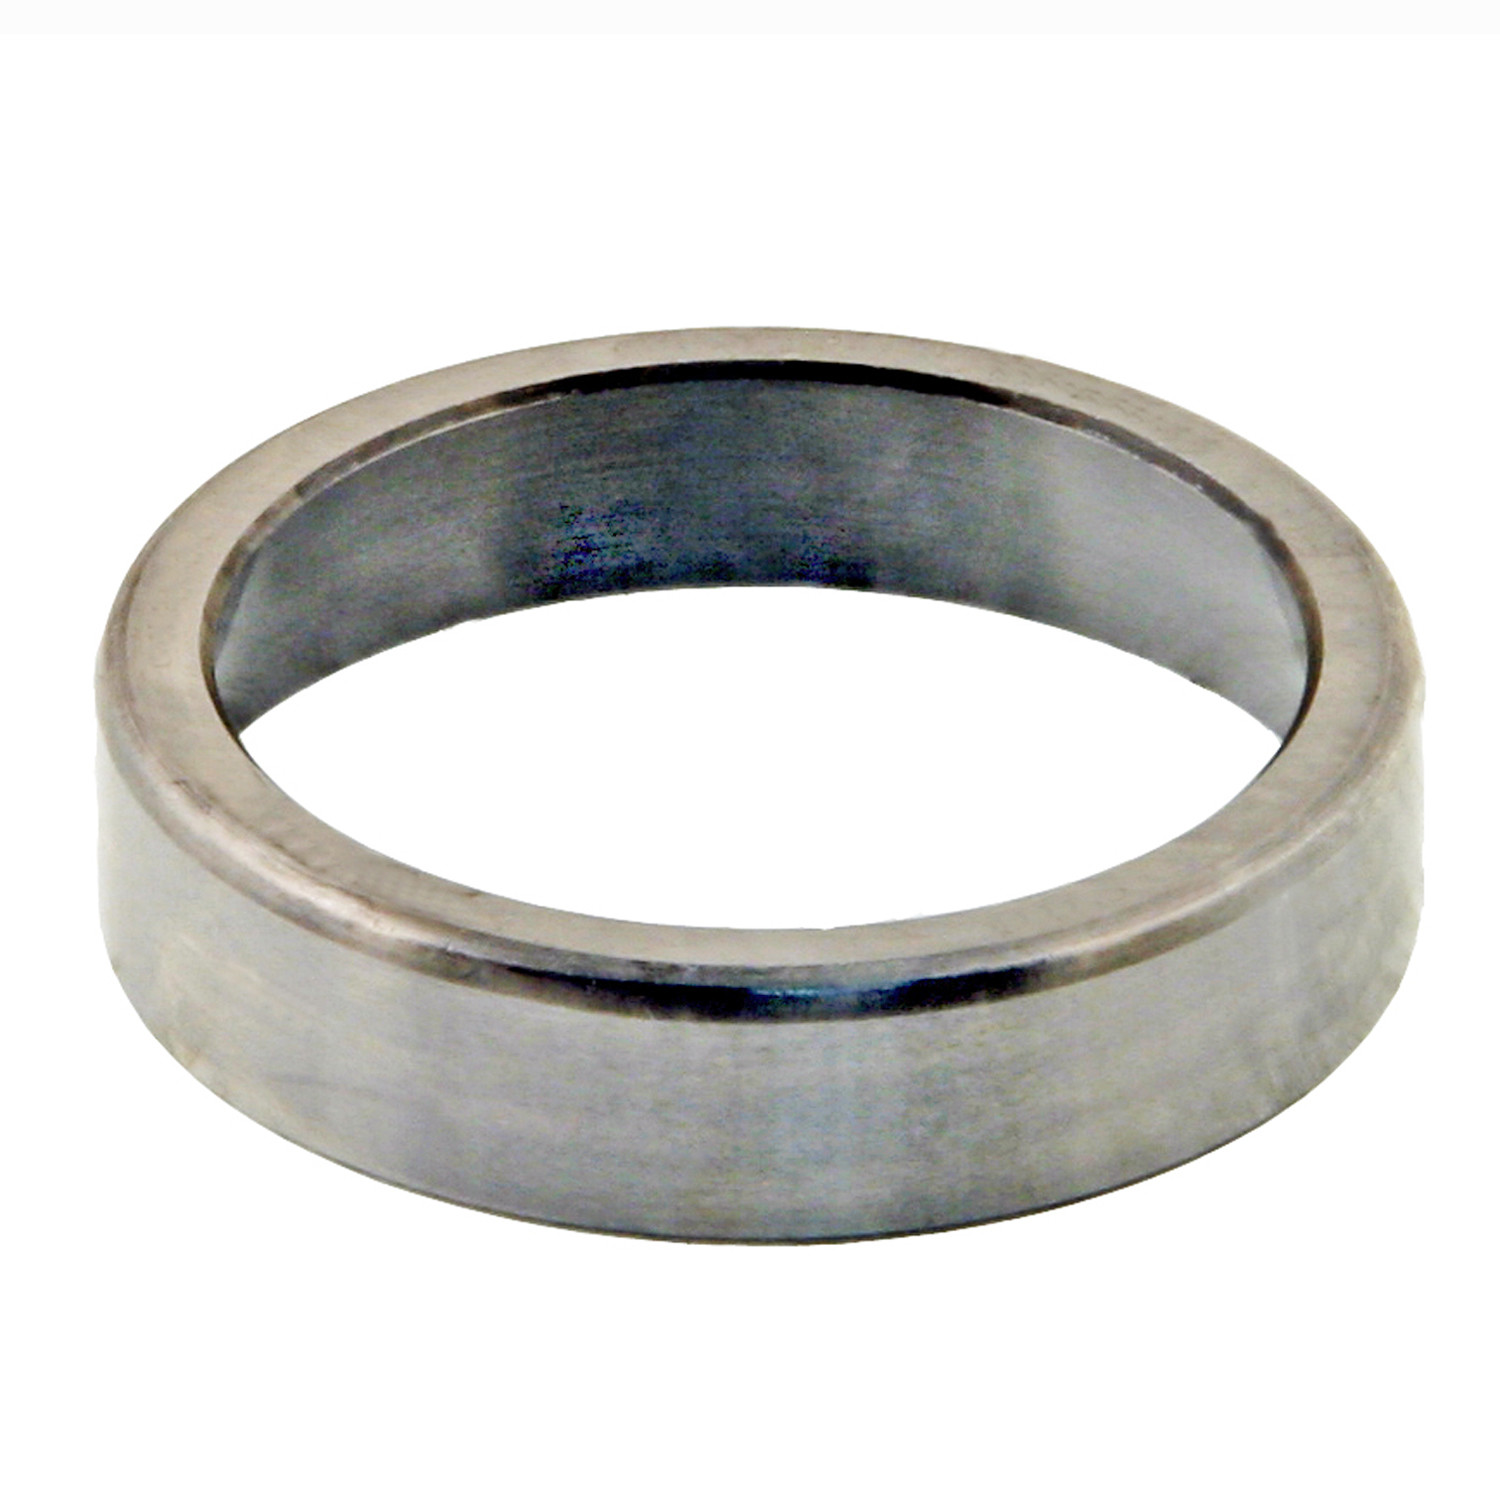 PRECISION AUTOMOTIVE INDUSTRIES - Rear Transmission Bearing - PAU 15245